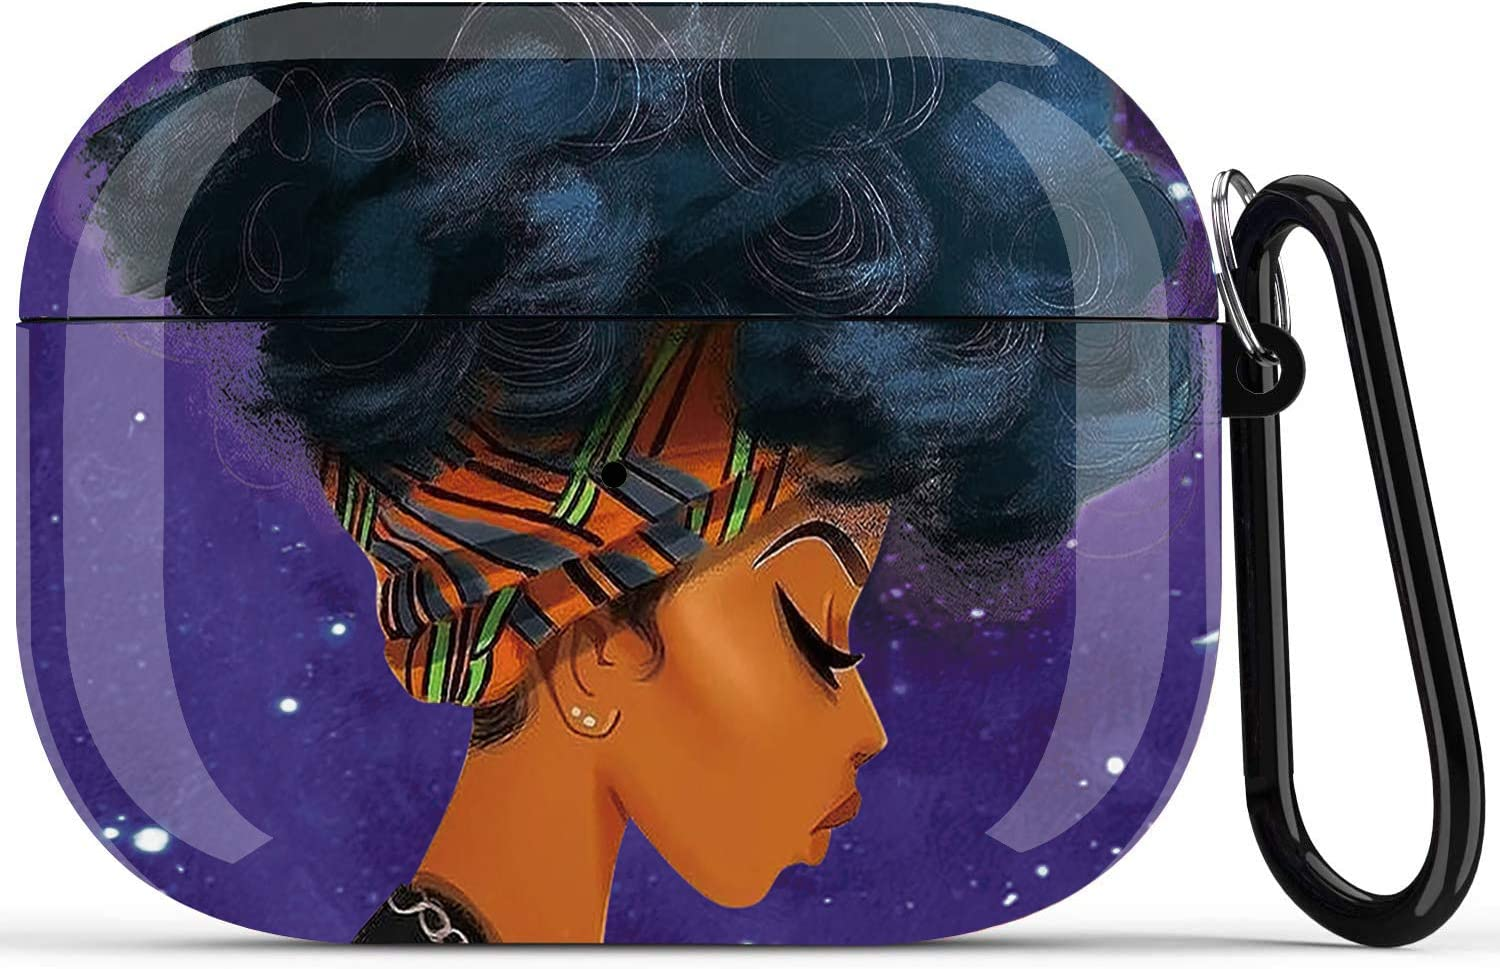 African American Girl Airpods Pro Case Cover, Black Girl Airpods Accessories Compatible with Apple Airpods Pro,Shockproof Protective Case Cover for Girls Women with Keychain - Blue Wrap Girl